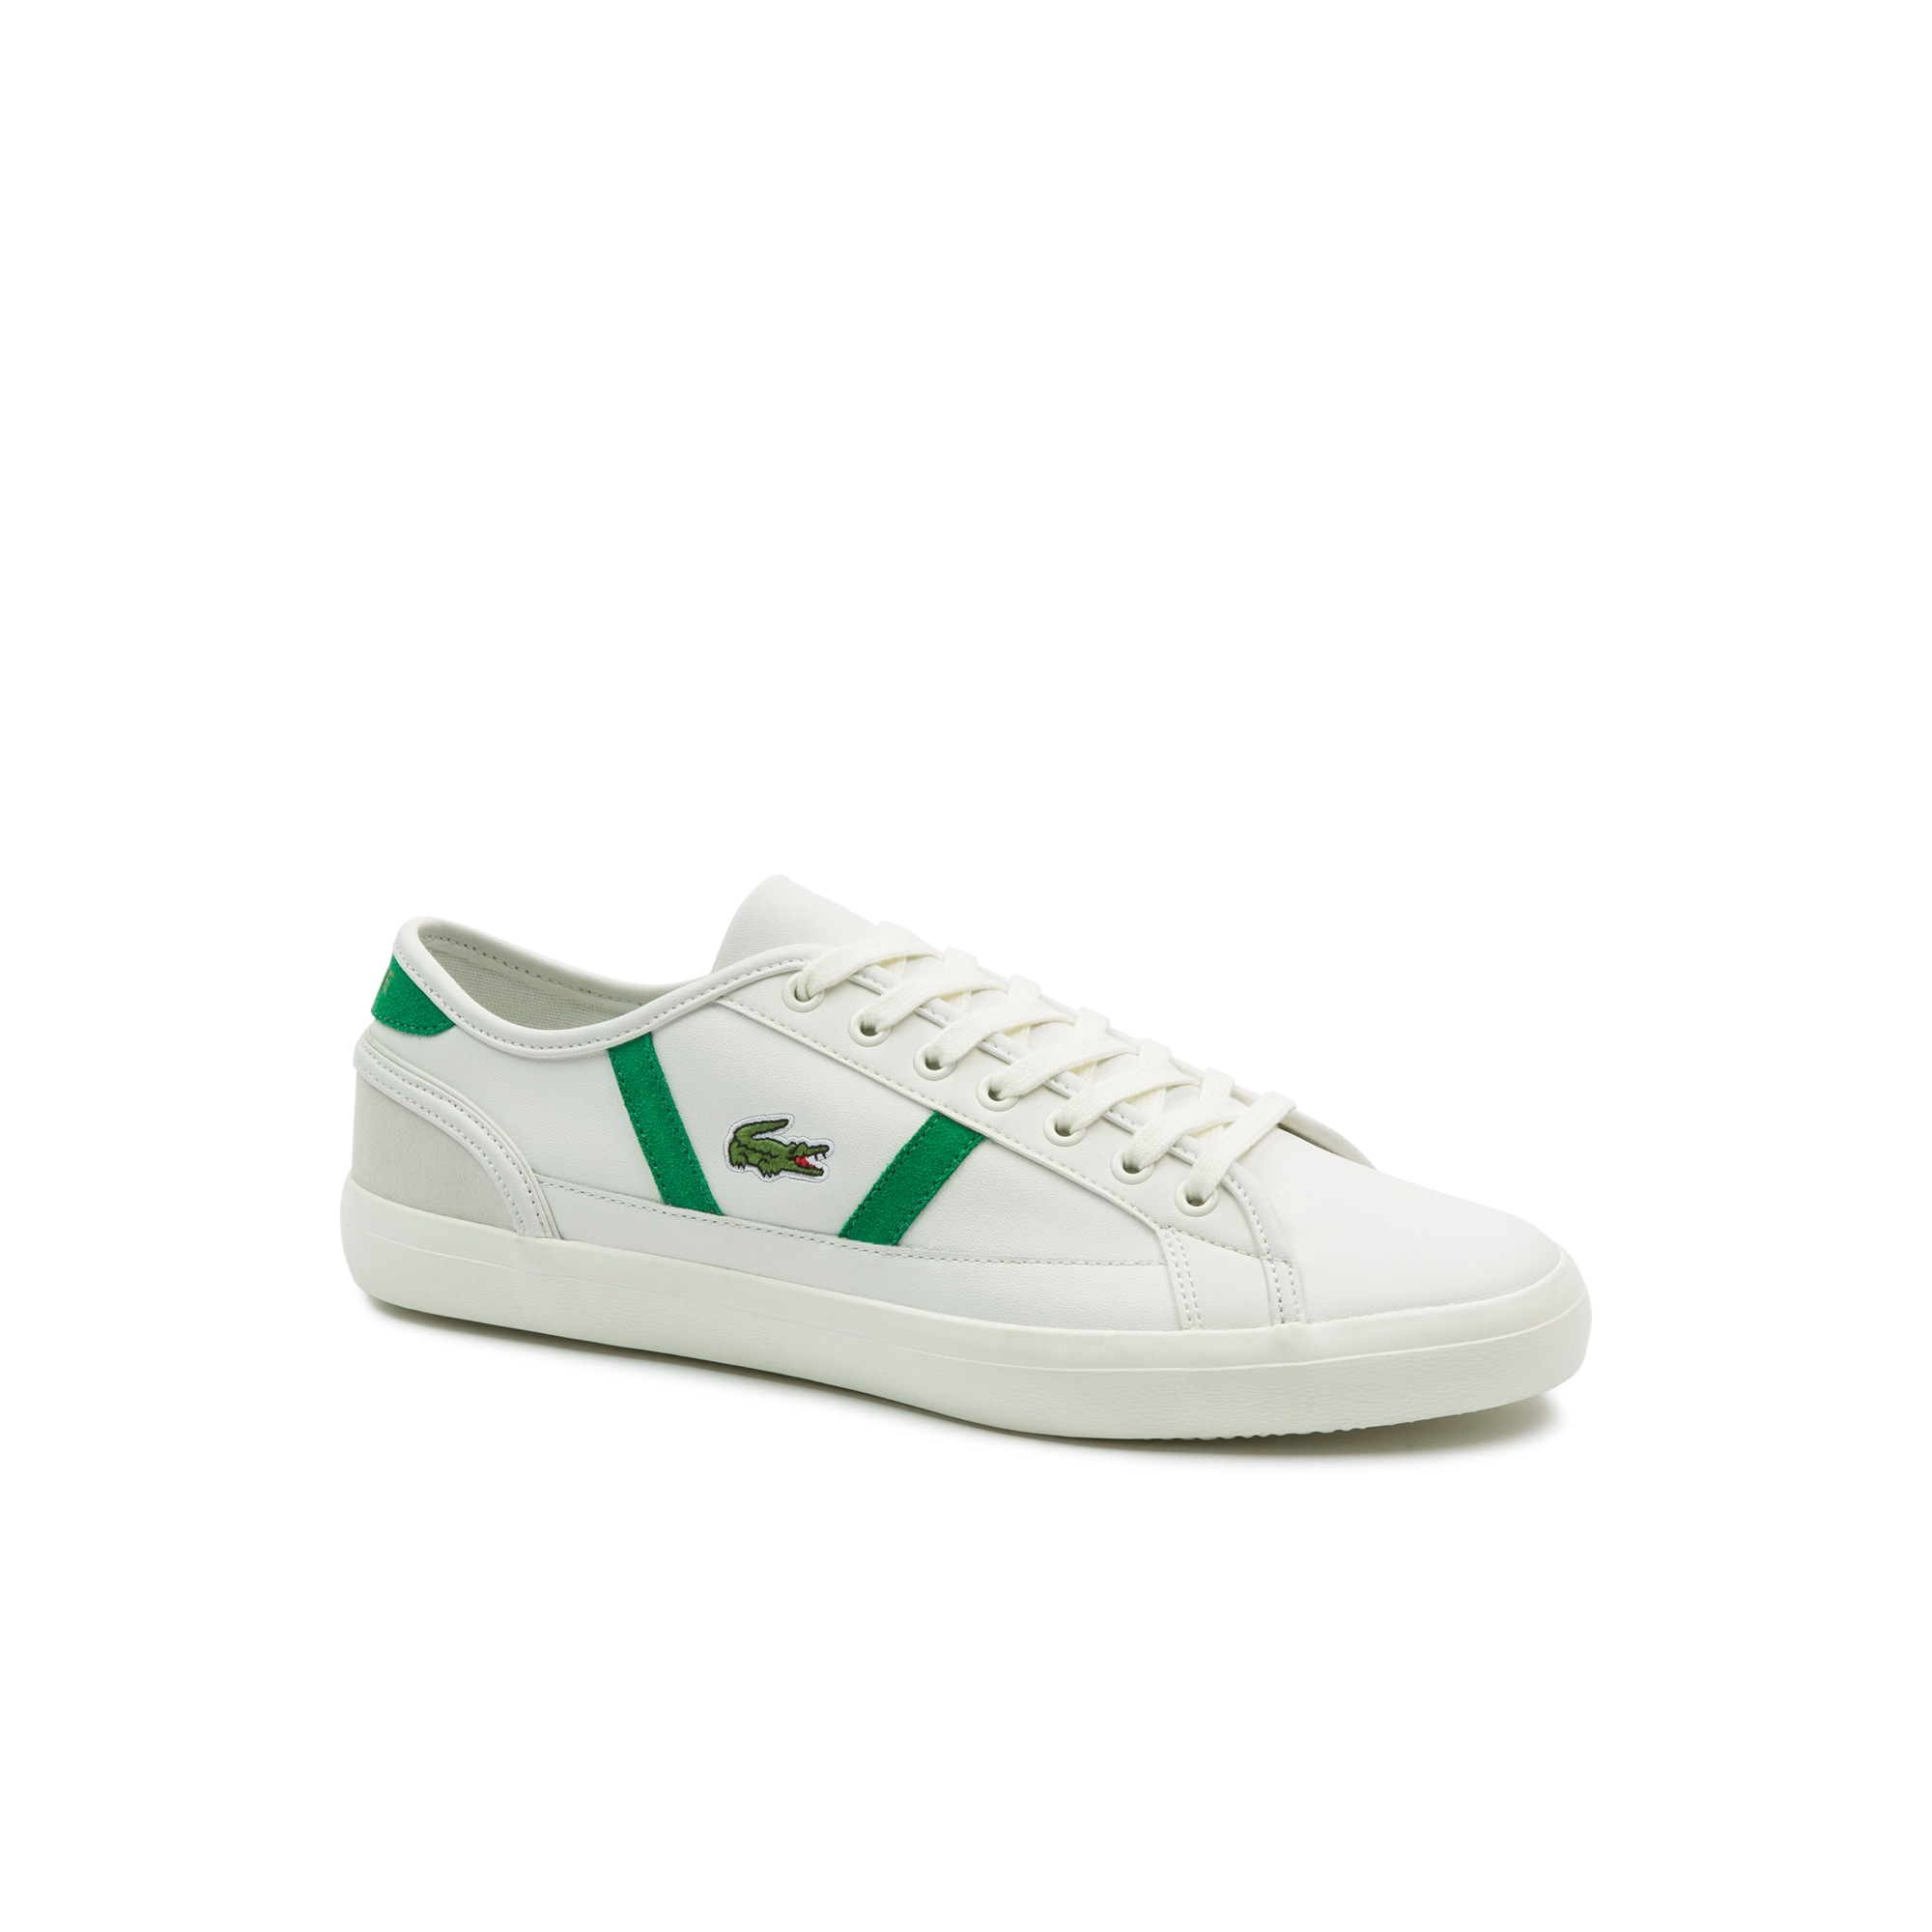 Men's Sideline Leather and Suede Trainers